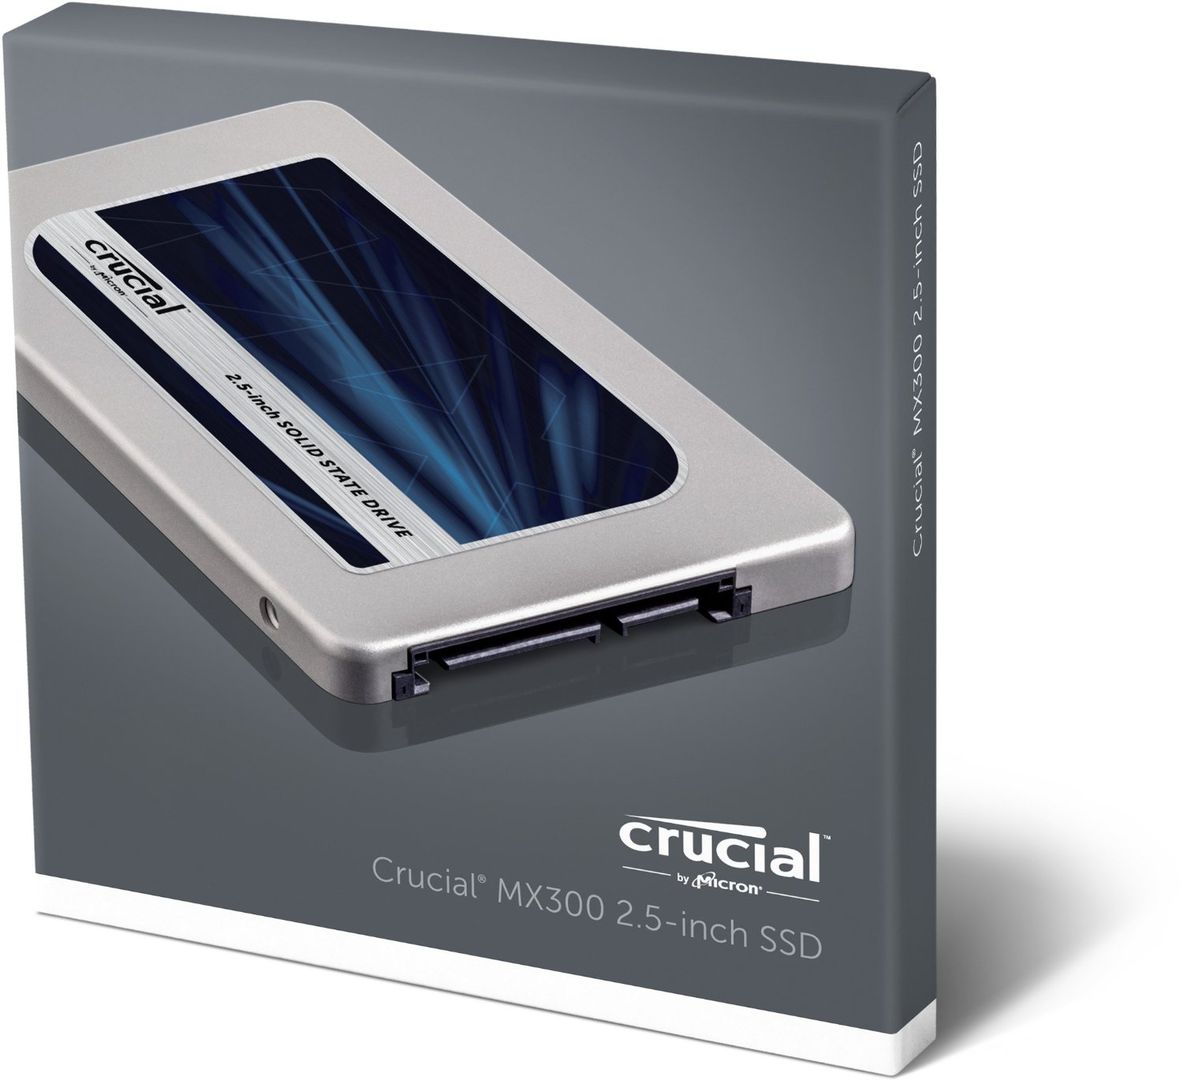 Amazon - 525GB SSD Crusial